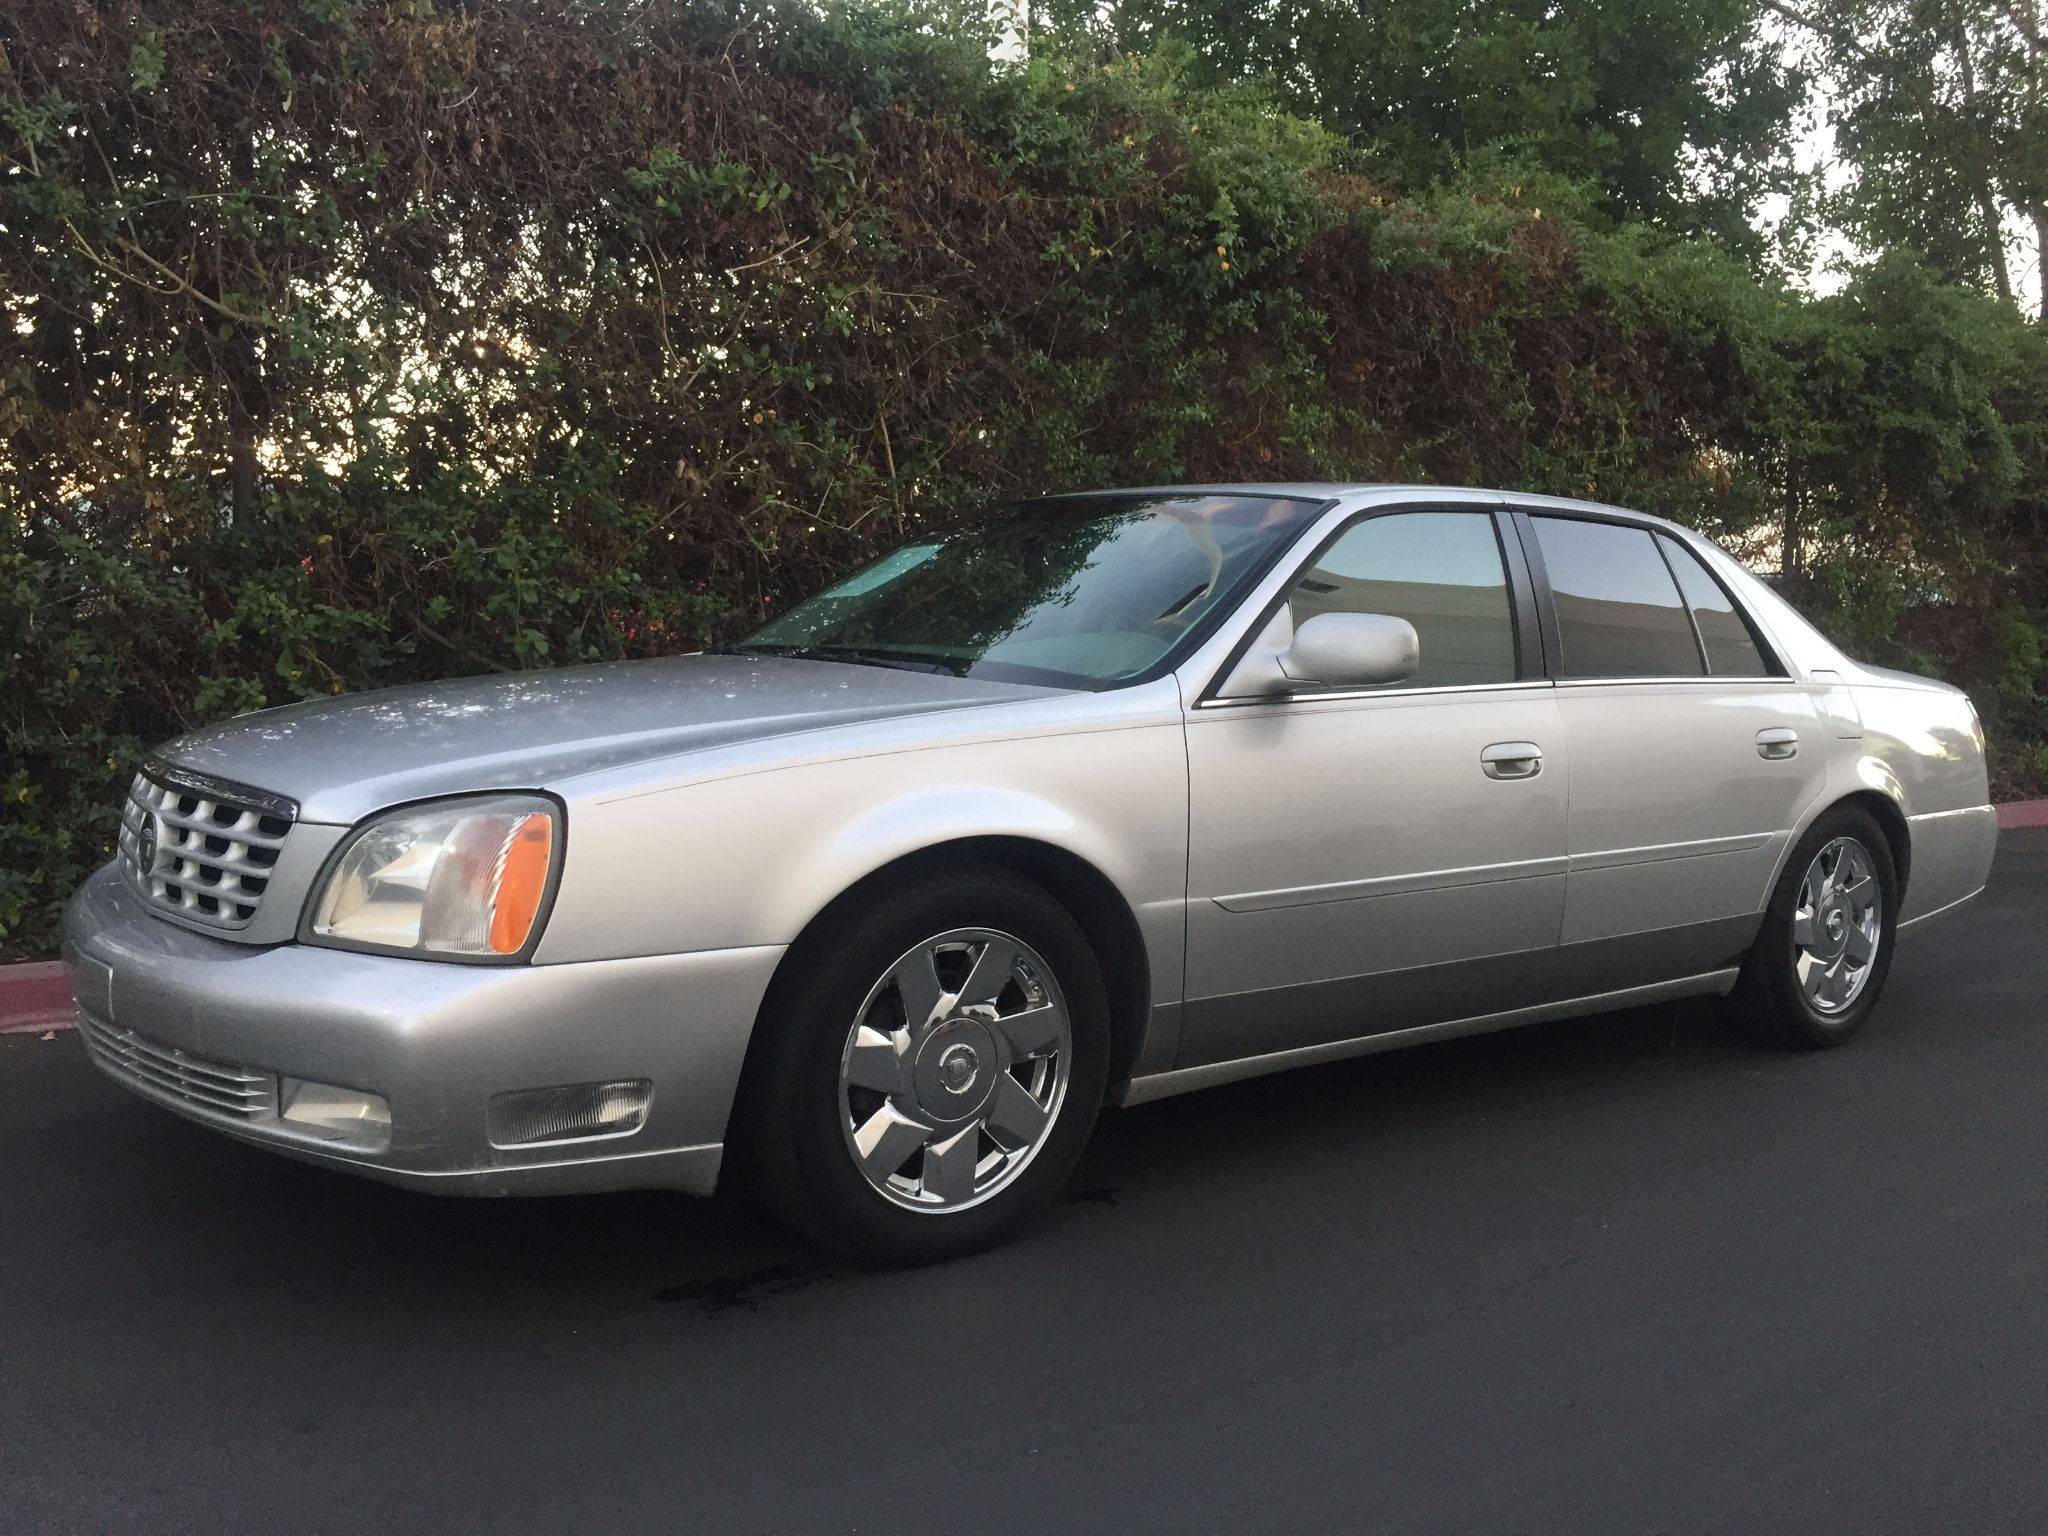 Used 2001 Cadillac DeVille DTS at City Cars Warehouse INC